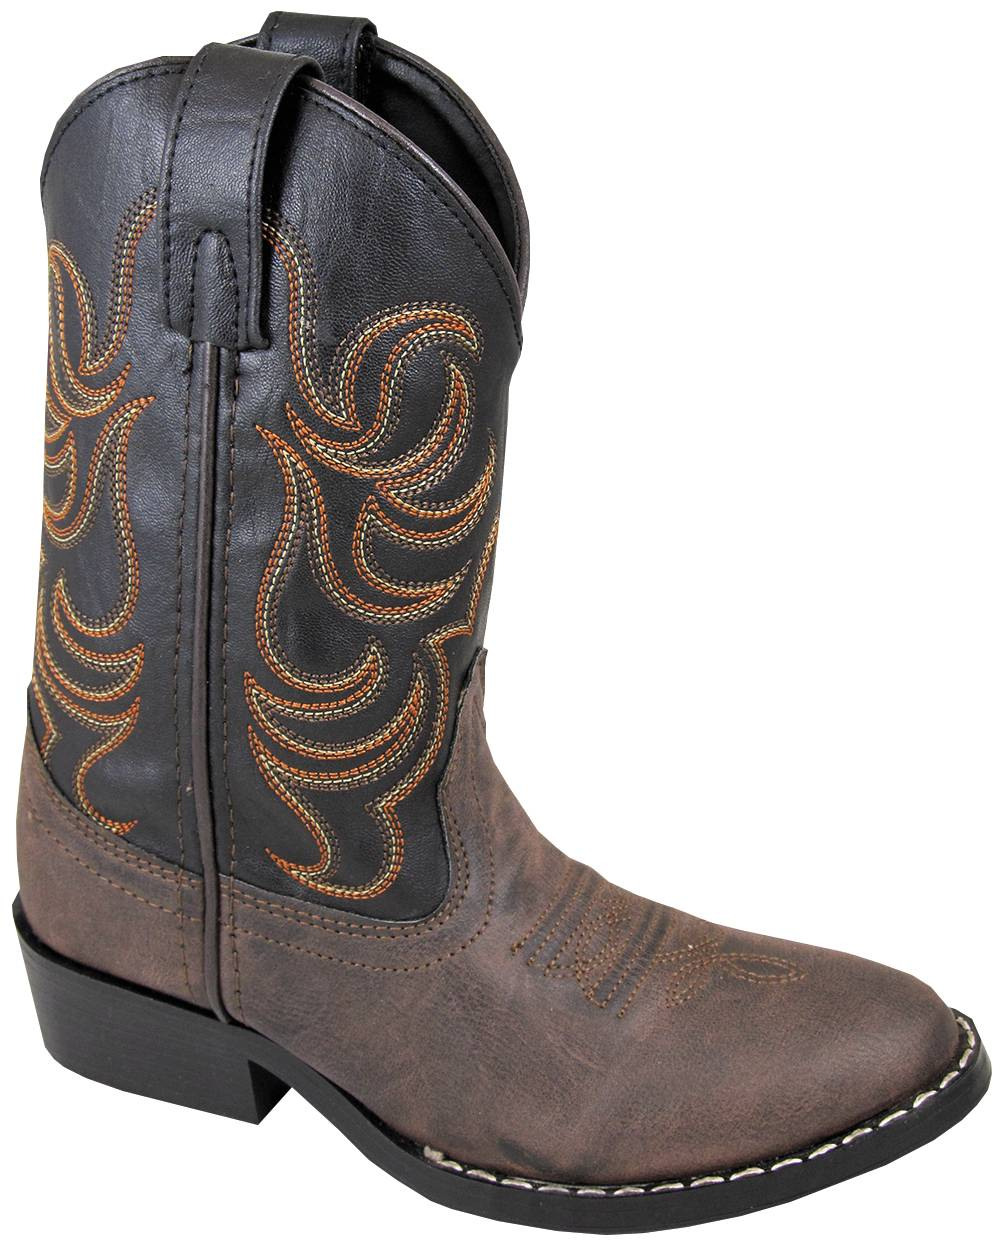 Smoky Mountain Toddler Monterey Western Boots - Brown/Black